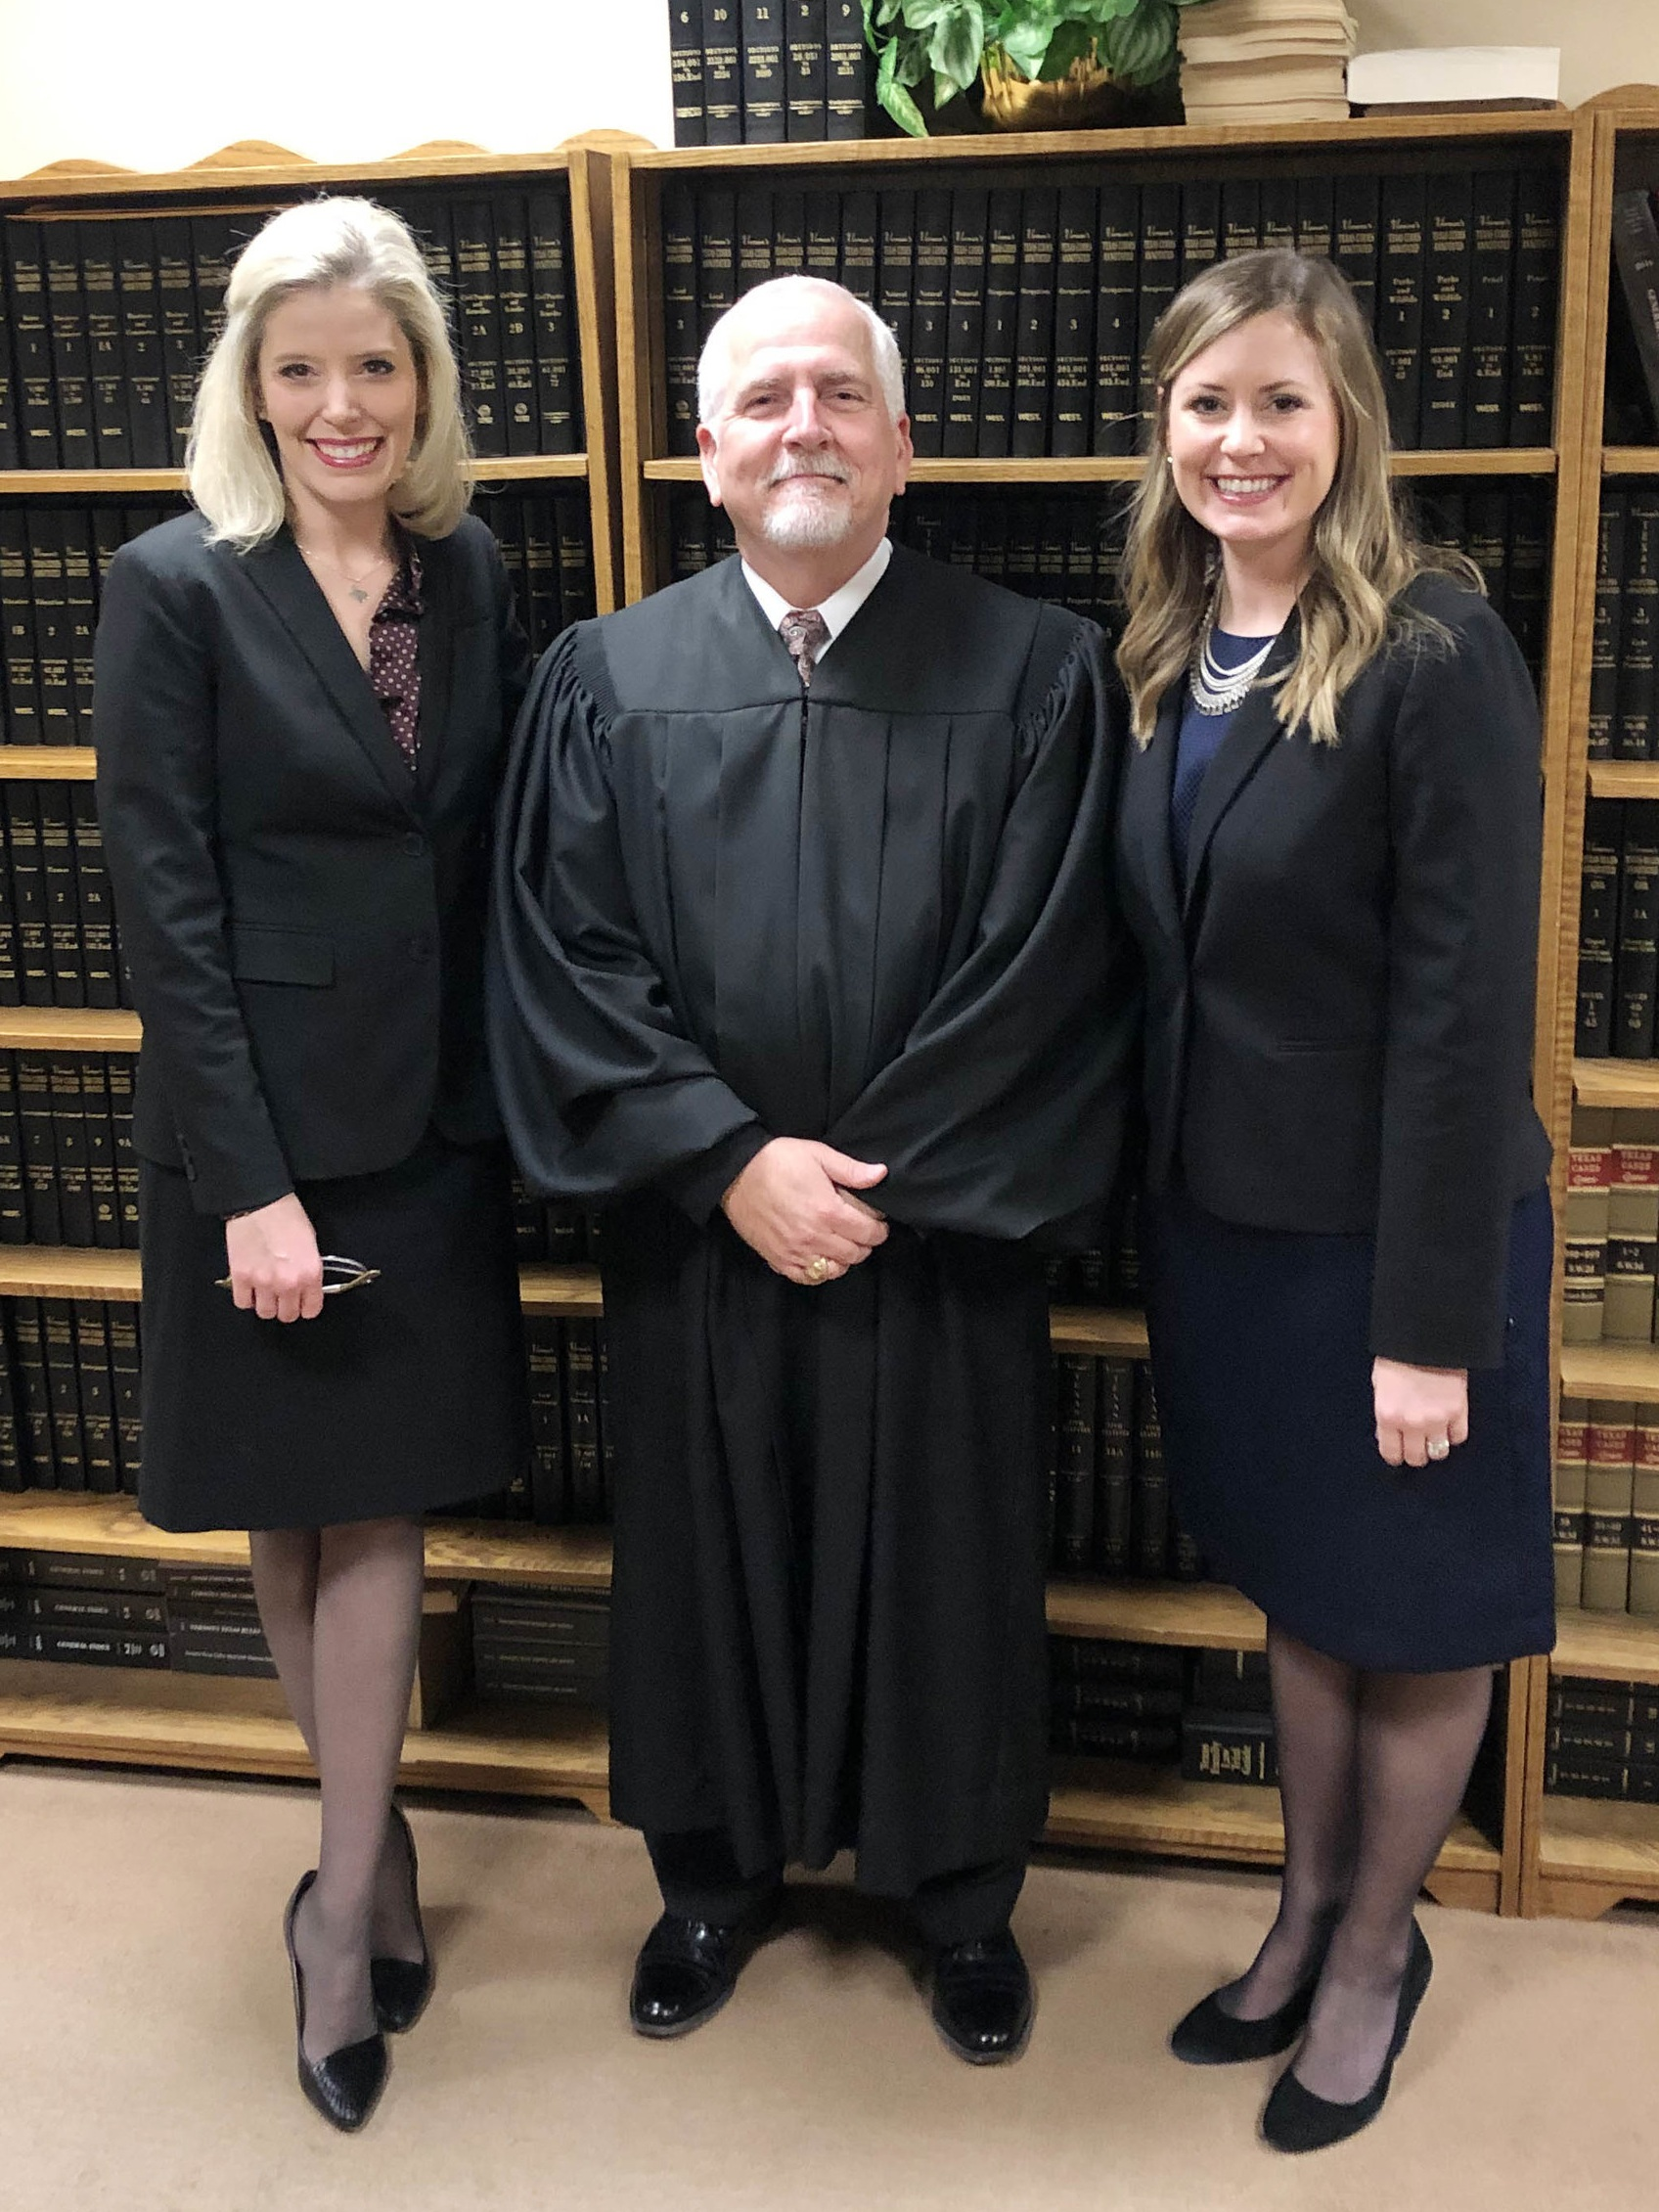 District Judge John Tidwell with Kelley (First Assistant District Attorney) and Lauren (Assistant District Attorney) on January 3, 2019, after their swearing-in ceremonies.